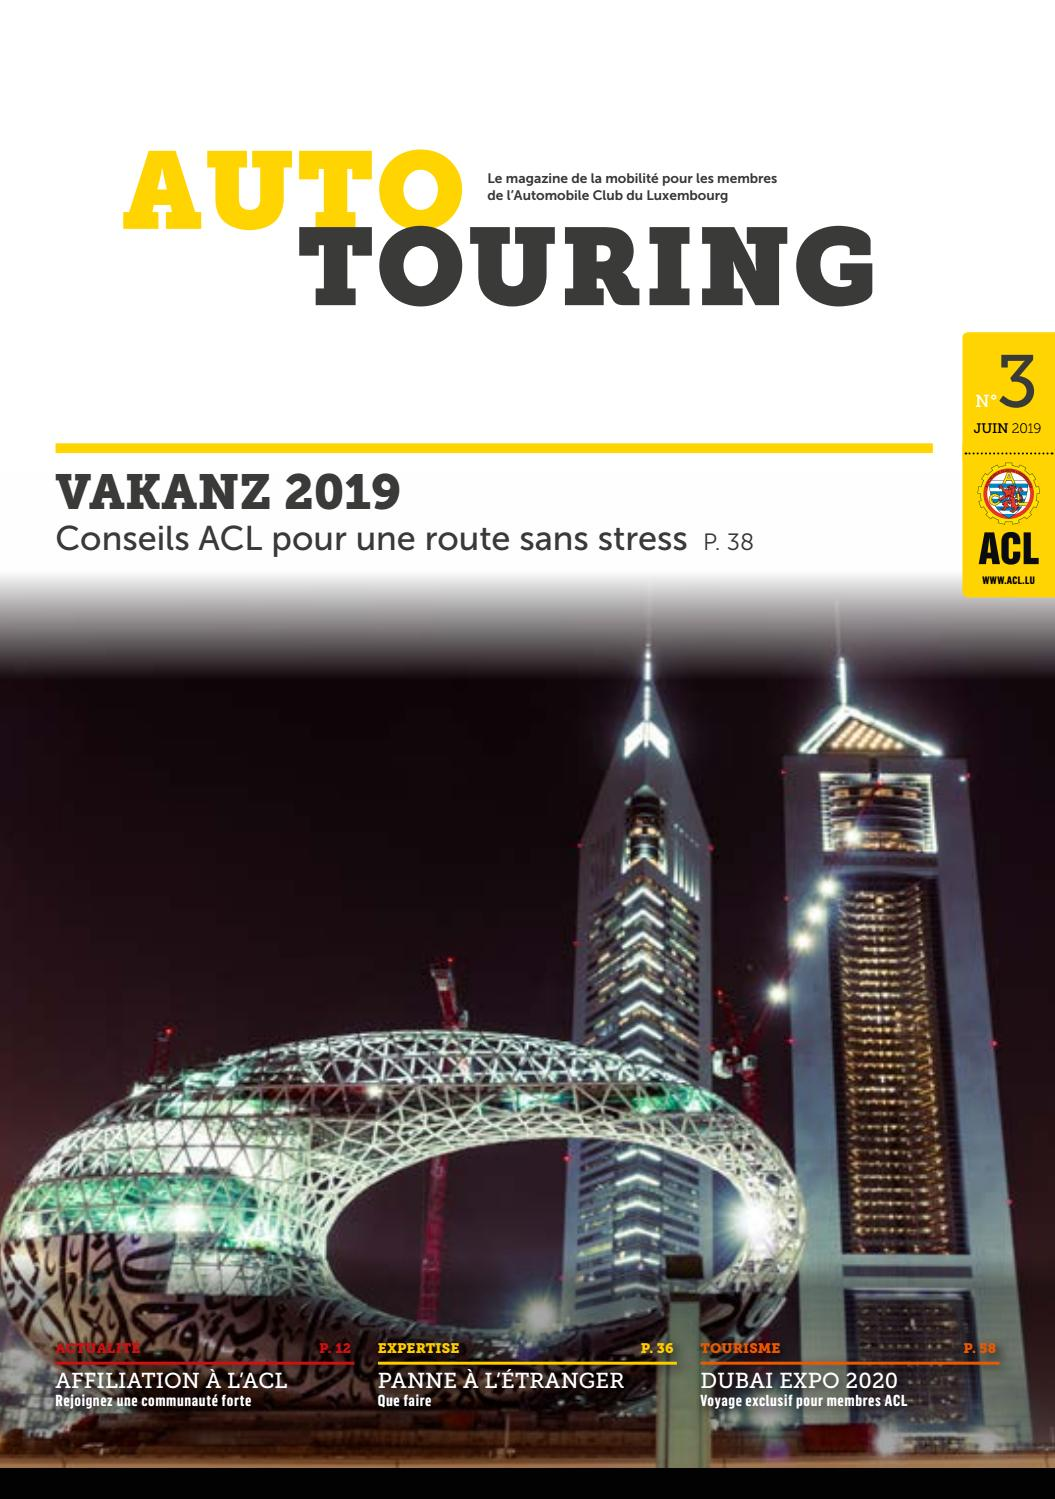 2019 Acl Autotouring By Juin Issuu c4AR35Ljq